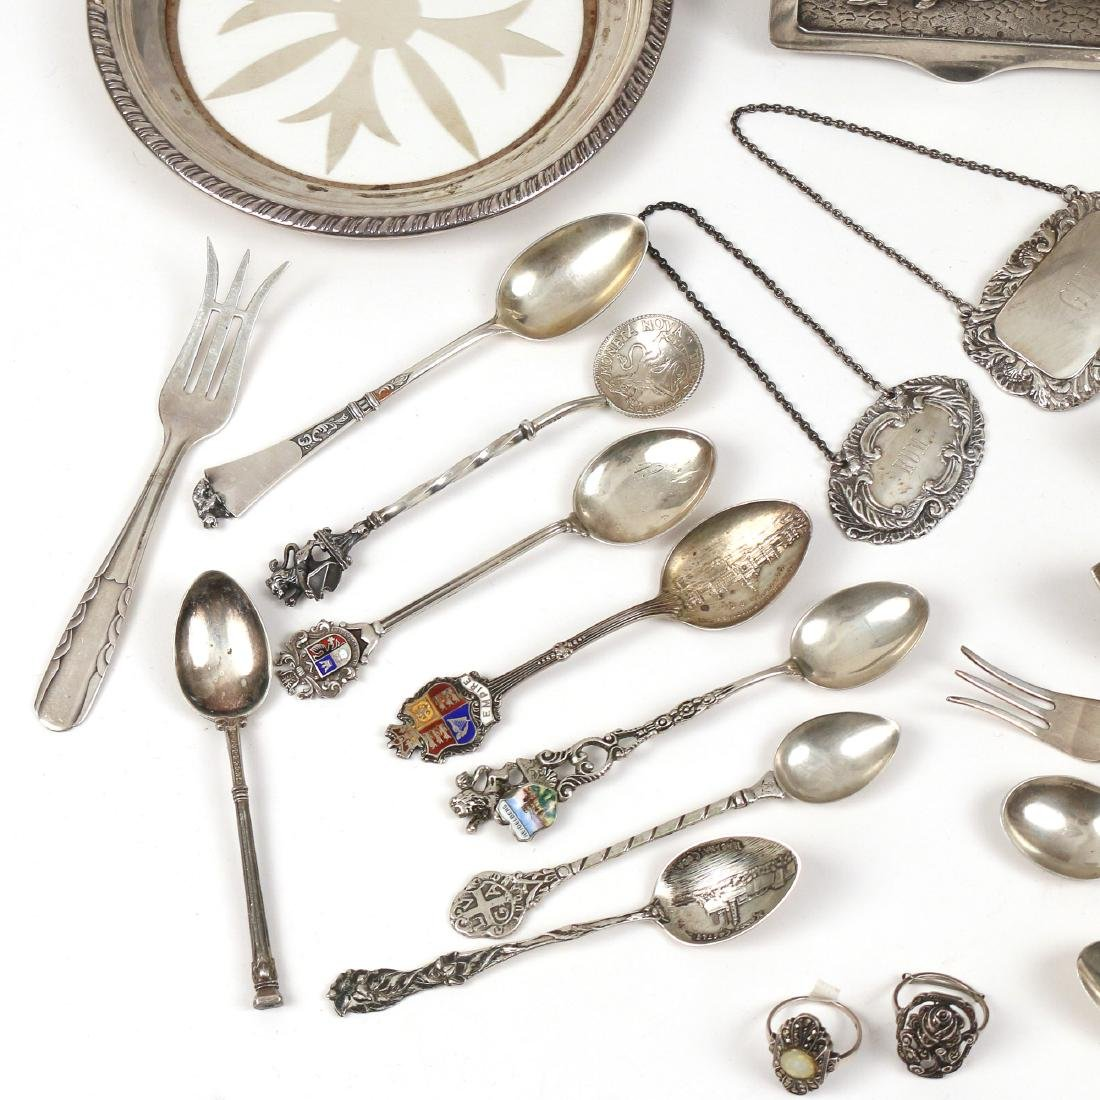 MISC. STERLING & 800 SILVER FLATWARE & OTHER - 2